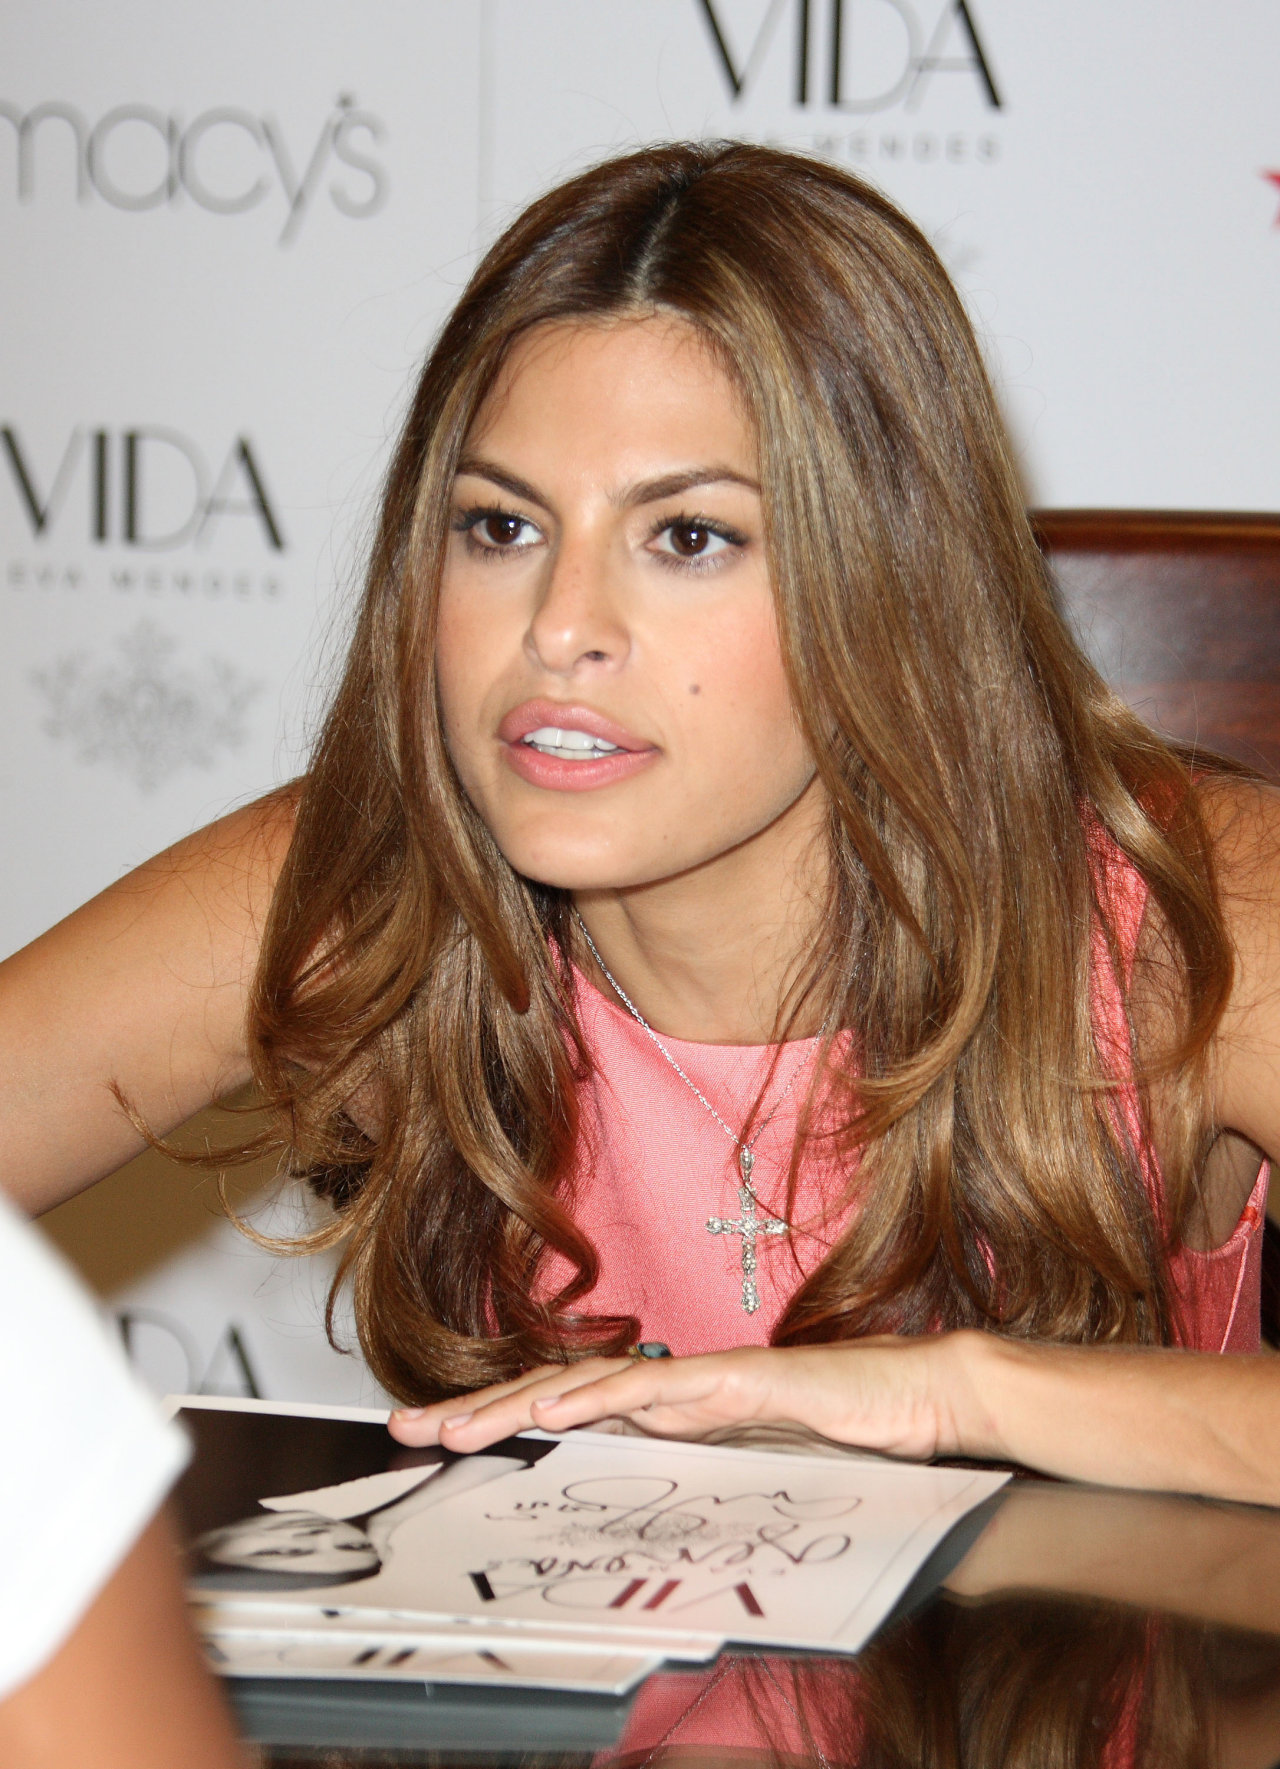 Eva Mendes leaked wallpapers